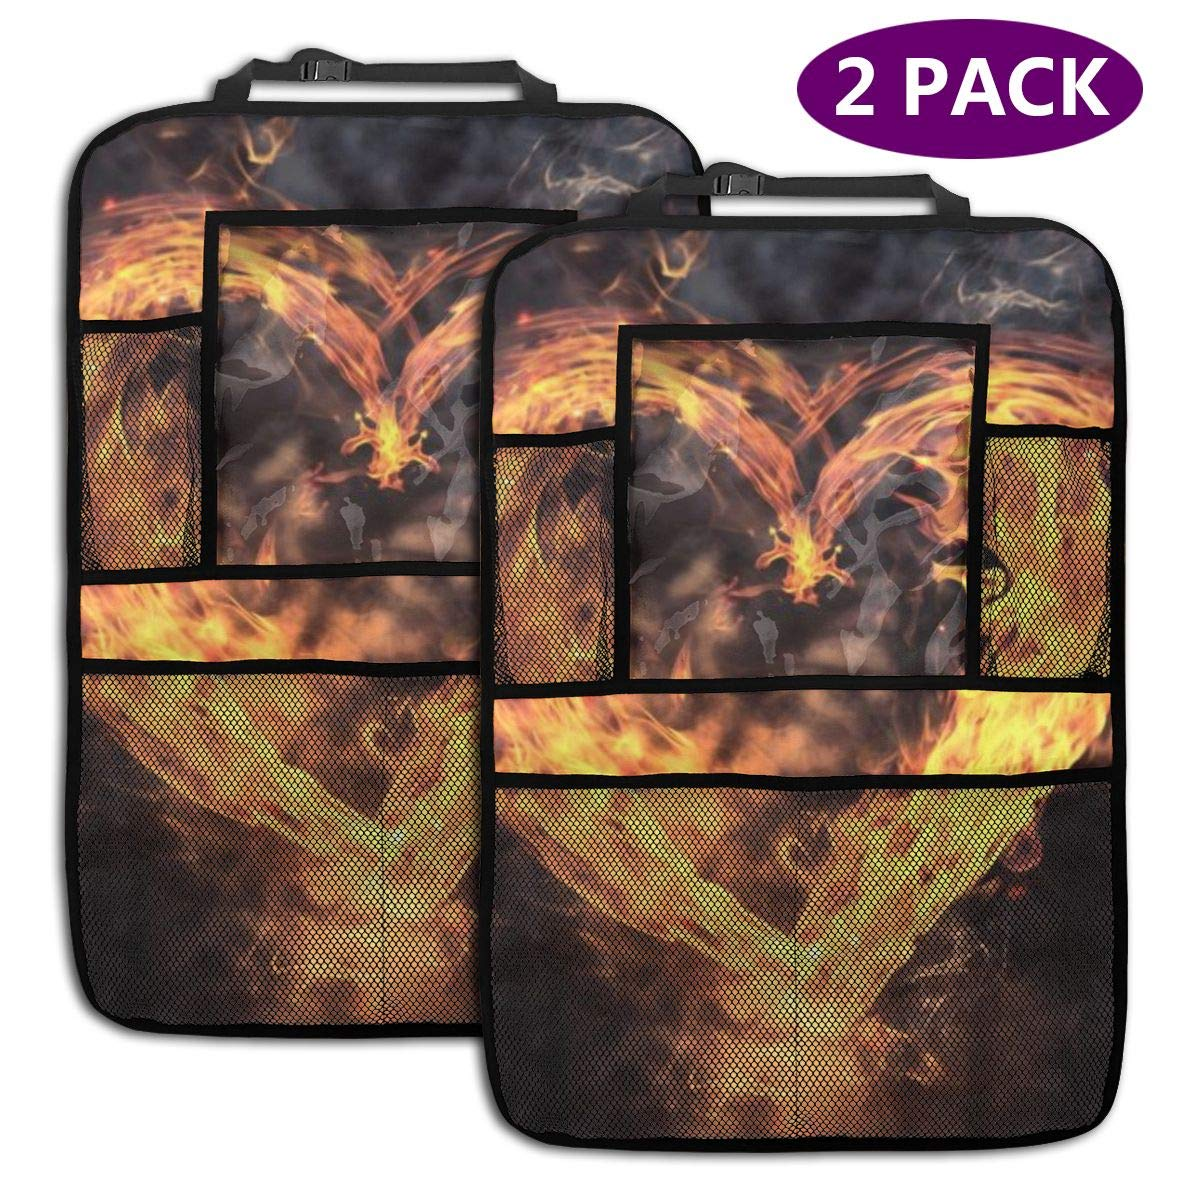 QF6FEICHAN Burning Heart Car Seat Back Protectors with Storage Pockets Kick Mats Accessories for Kids and Toddlers by QF6FEICHAN